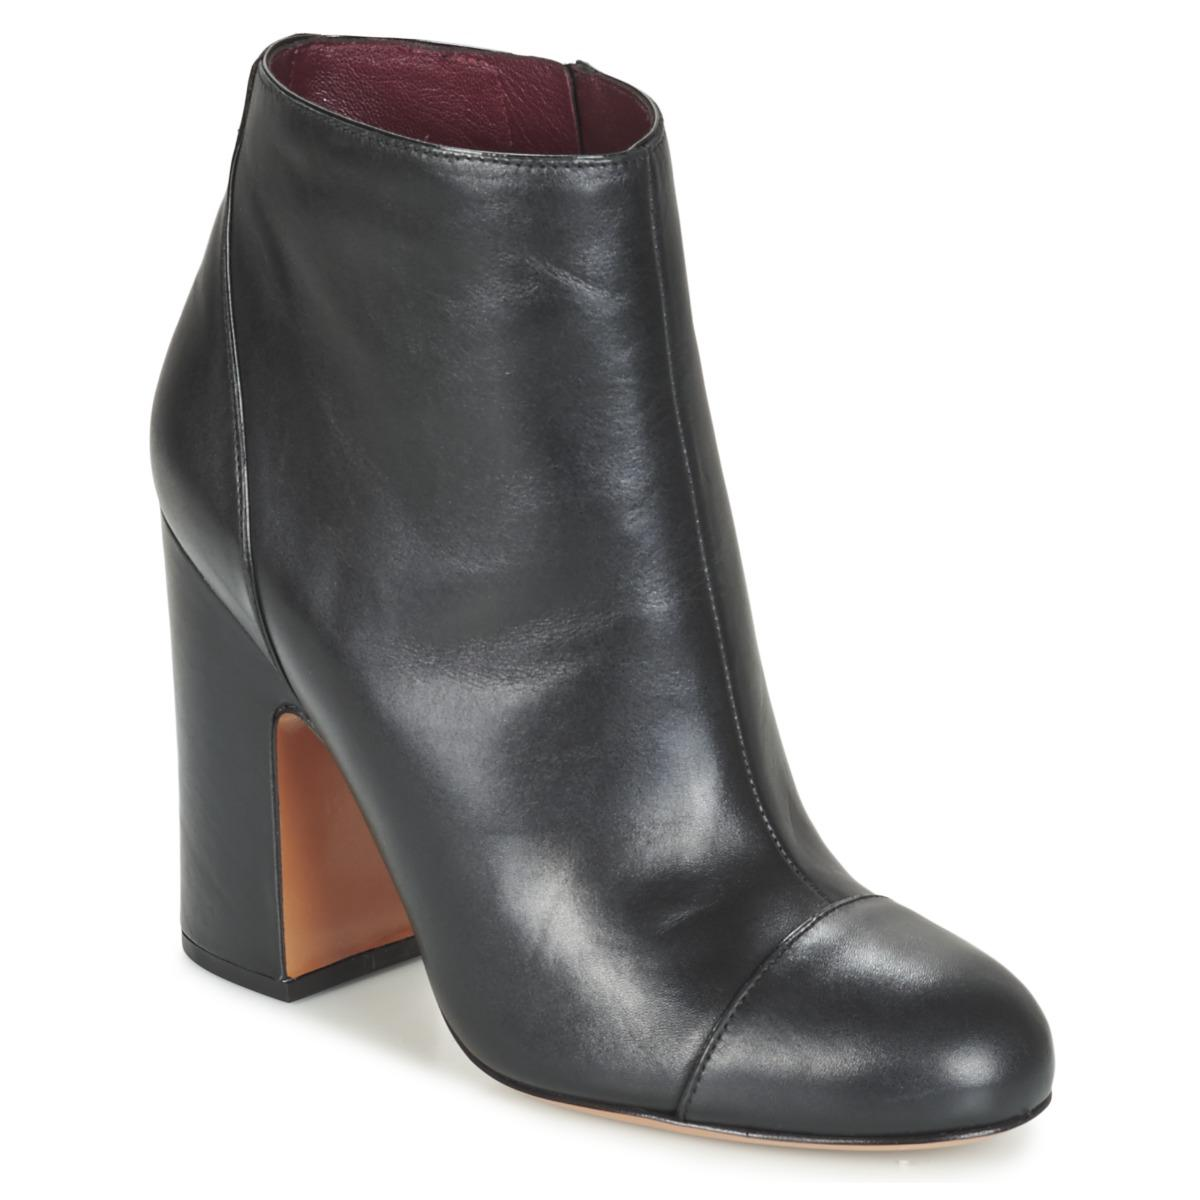 Fast Delivery Online Buy Cheap 100% Guaranteed Marc Jacobs DOLLS CORA women's Low Ankle Boots in Cheap Price Low Shipping Fee Order Online How Much qEWqw